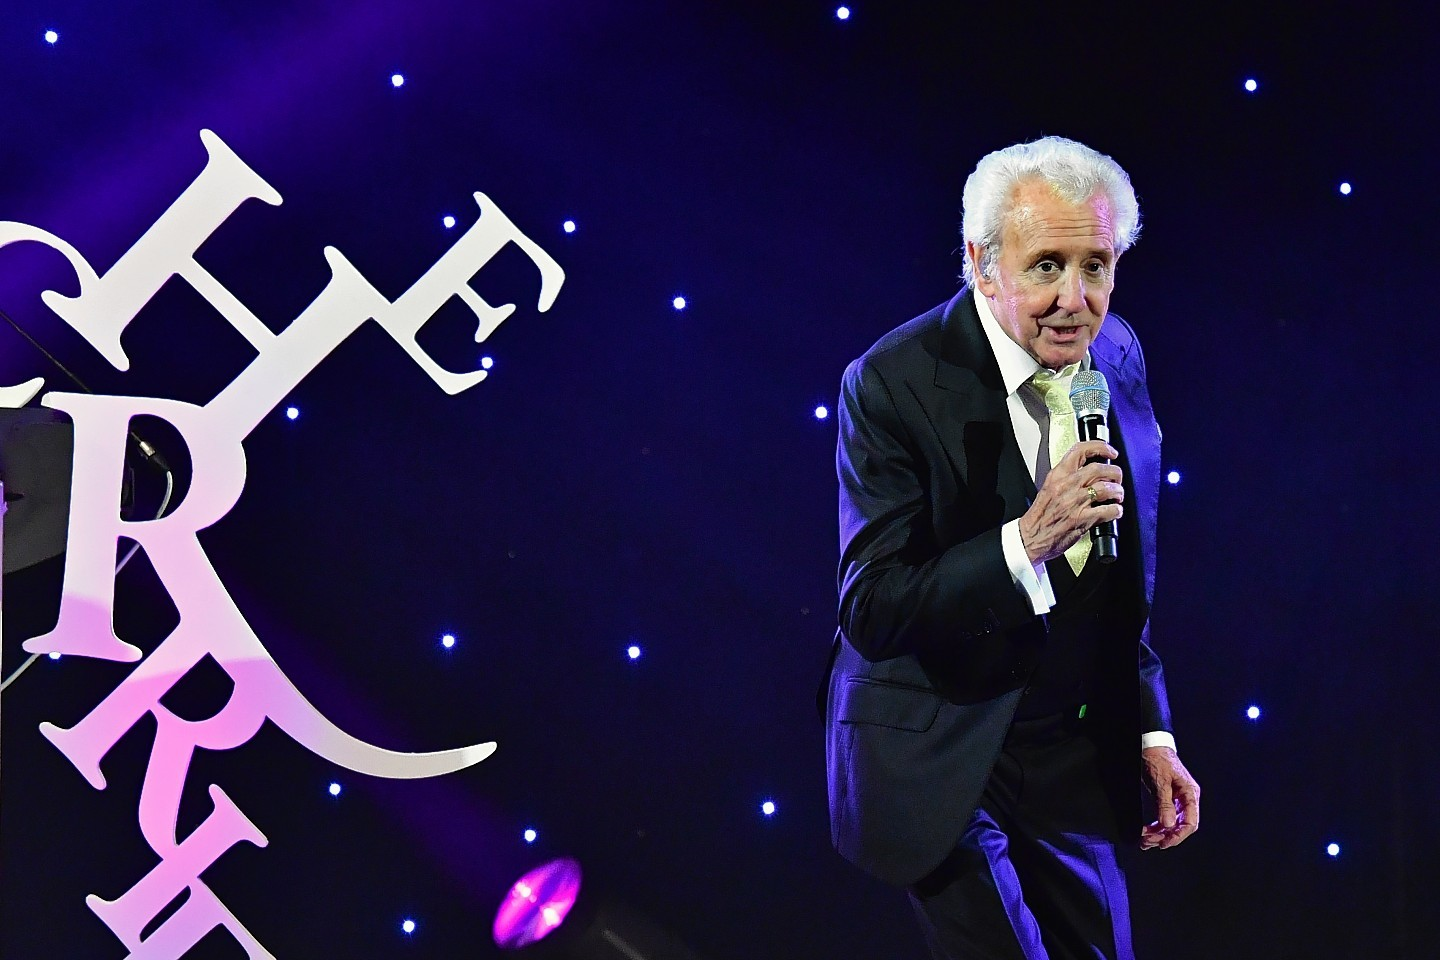 Tony Christie on stage